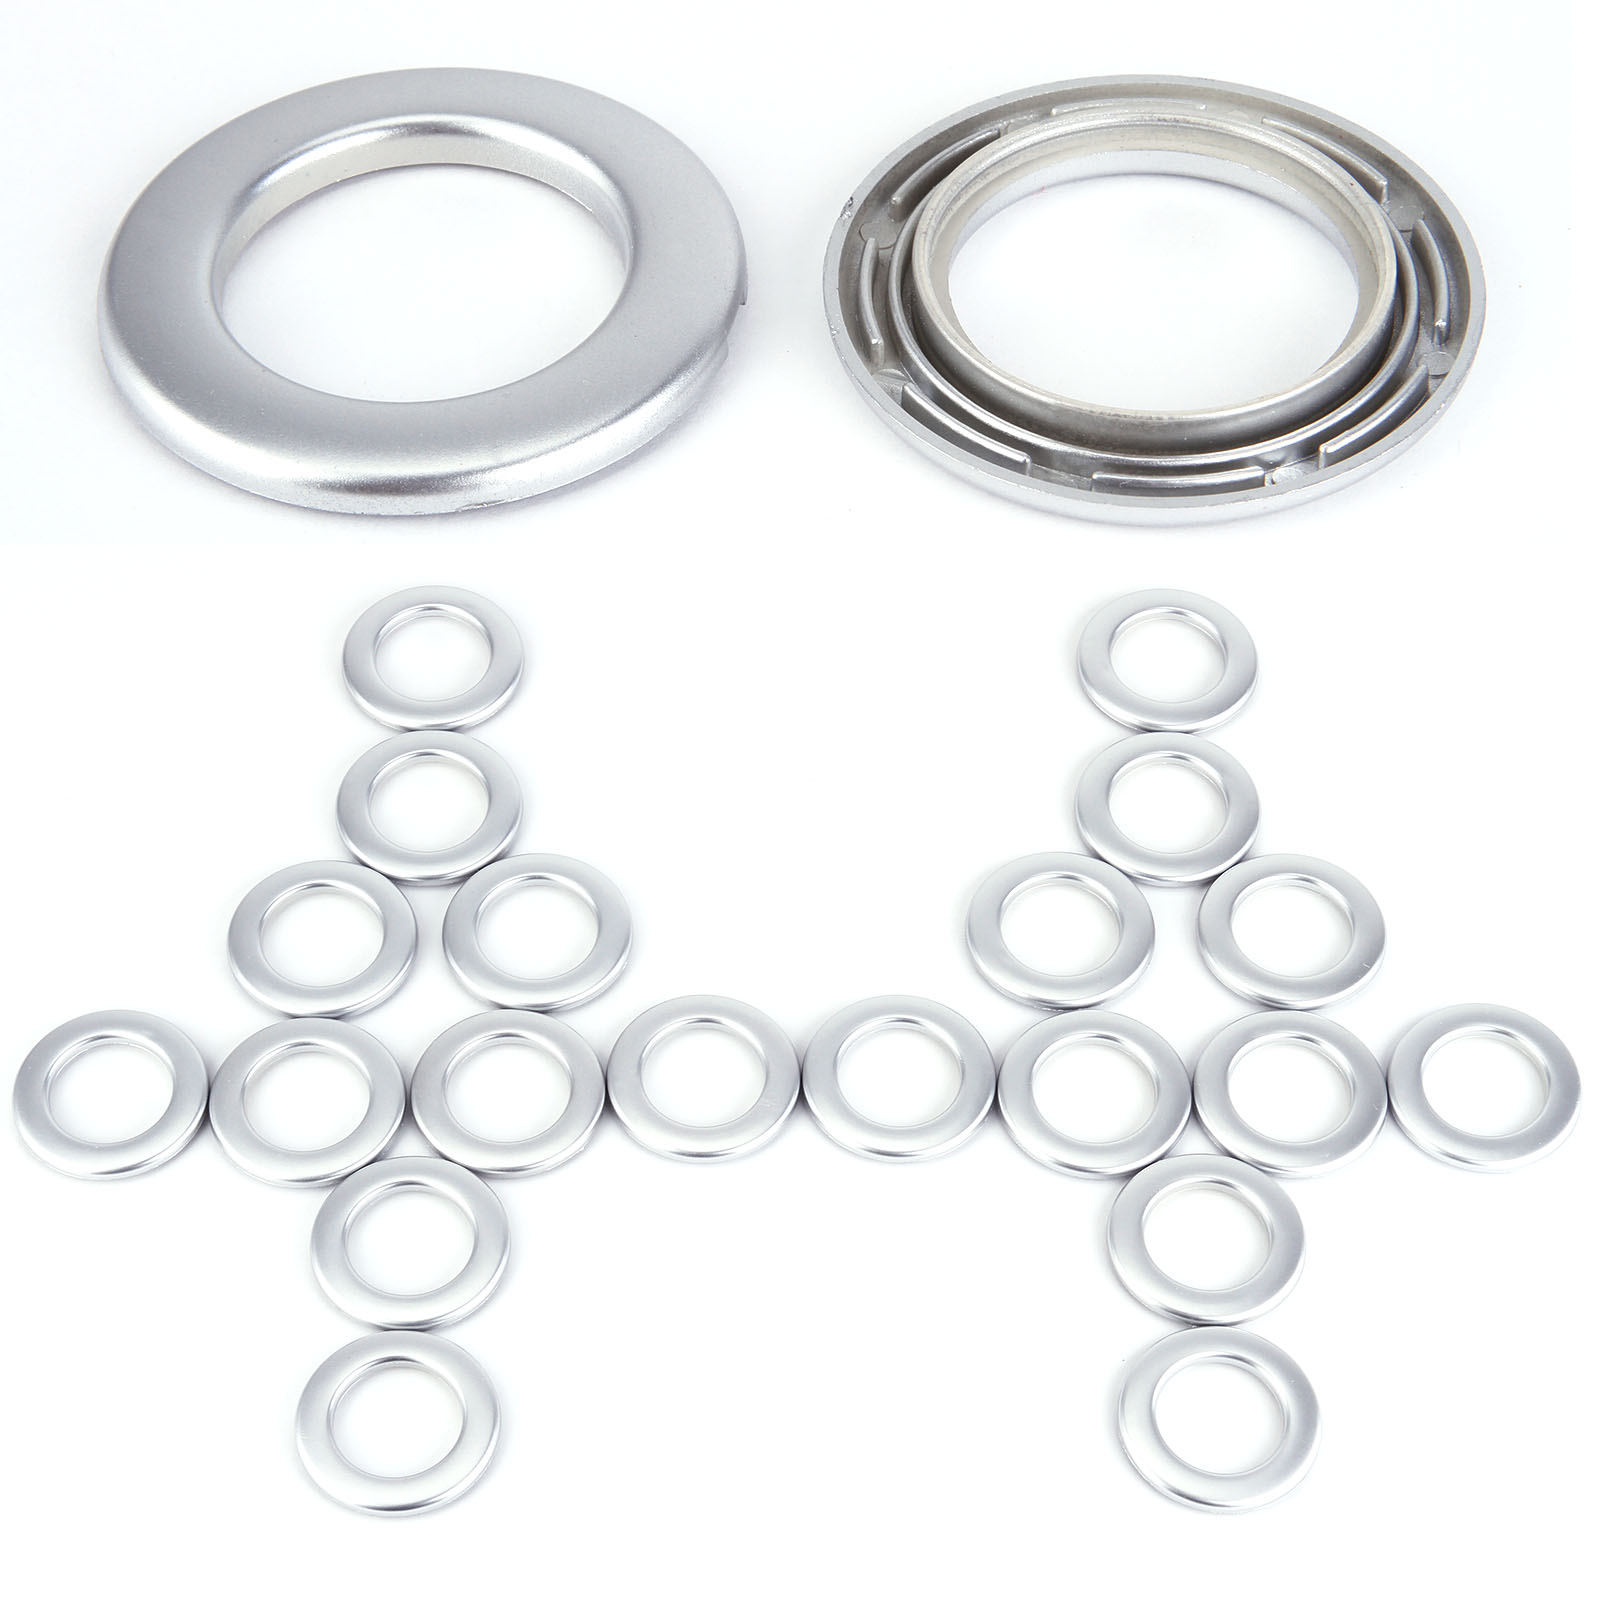 Set Of 20 Plastic Drapery Curtain Eyelets Rings Clips Grommets Ebay